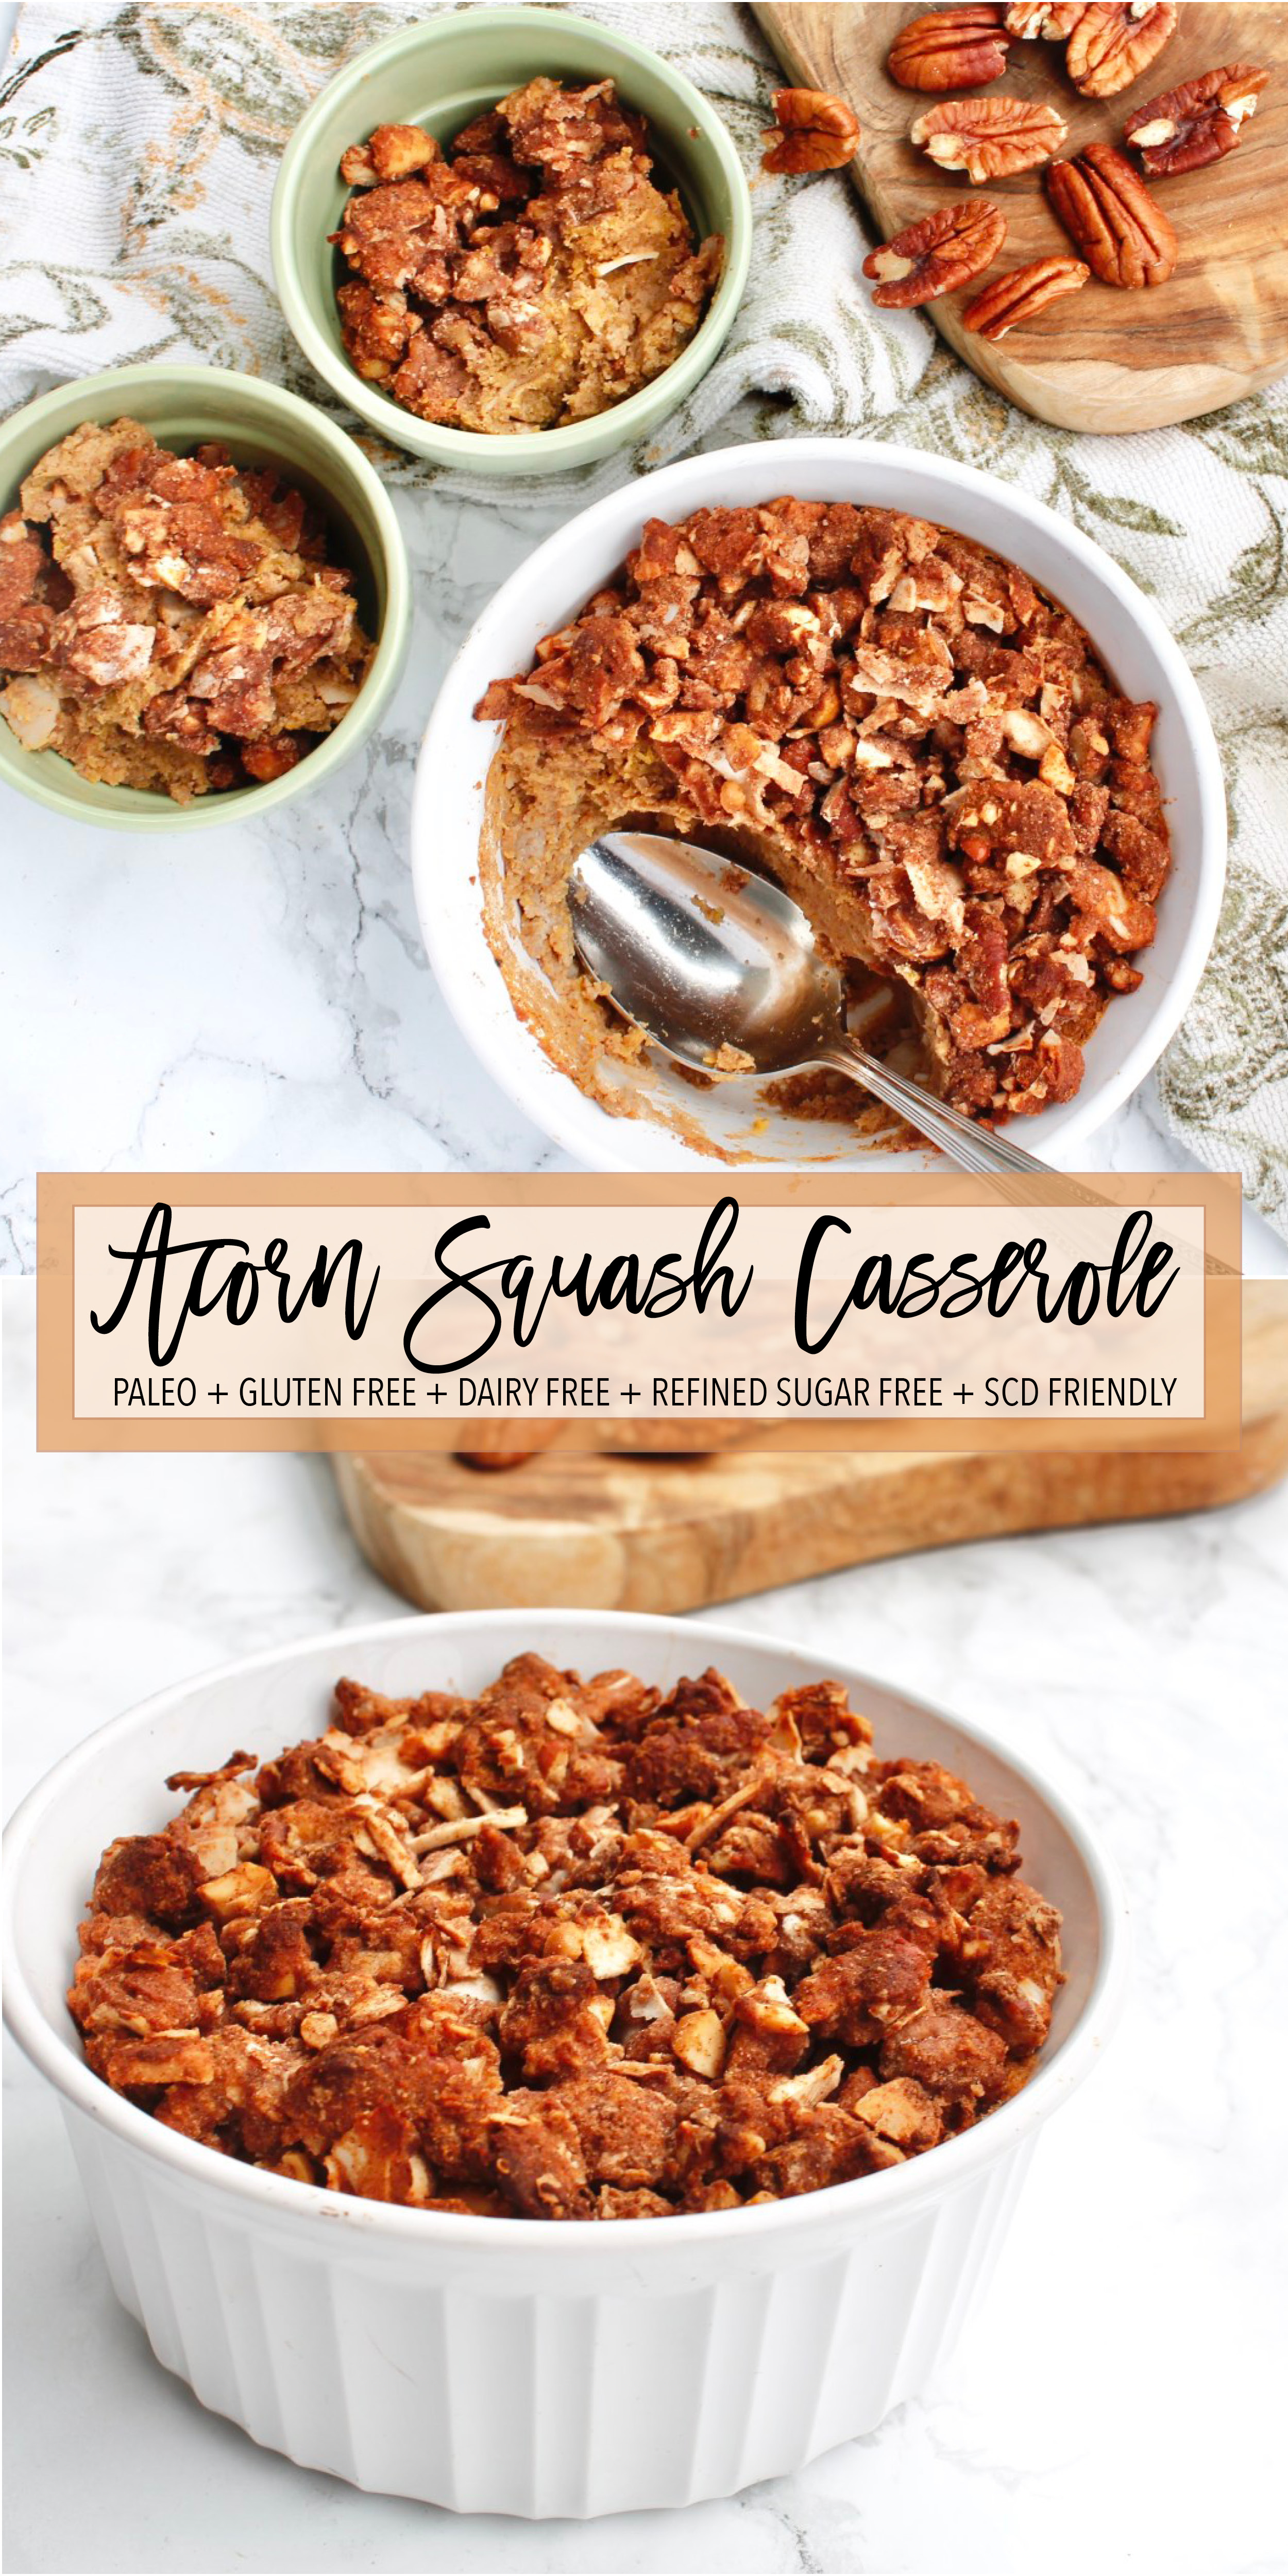 Looking for healthy Thanksgiving recipes? This paleo and dairy free acorn squash casserole is the perfect option! It's grain free, gluten free, refined sugar free and Specific Carbohydrate Diet friendly! It's a great healthy twist on an old classic. Click through to try the recipe! #healthyholidays #healthythanksgiving #paleothanksgiving